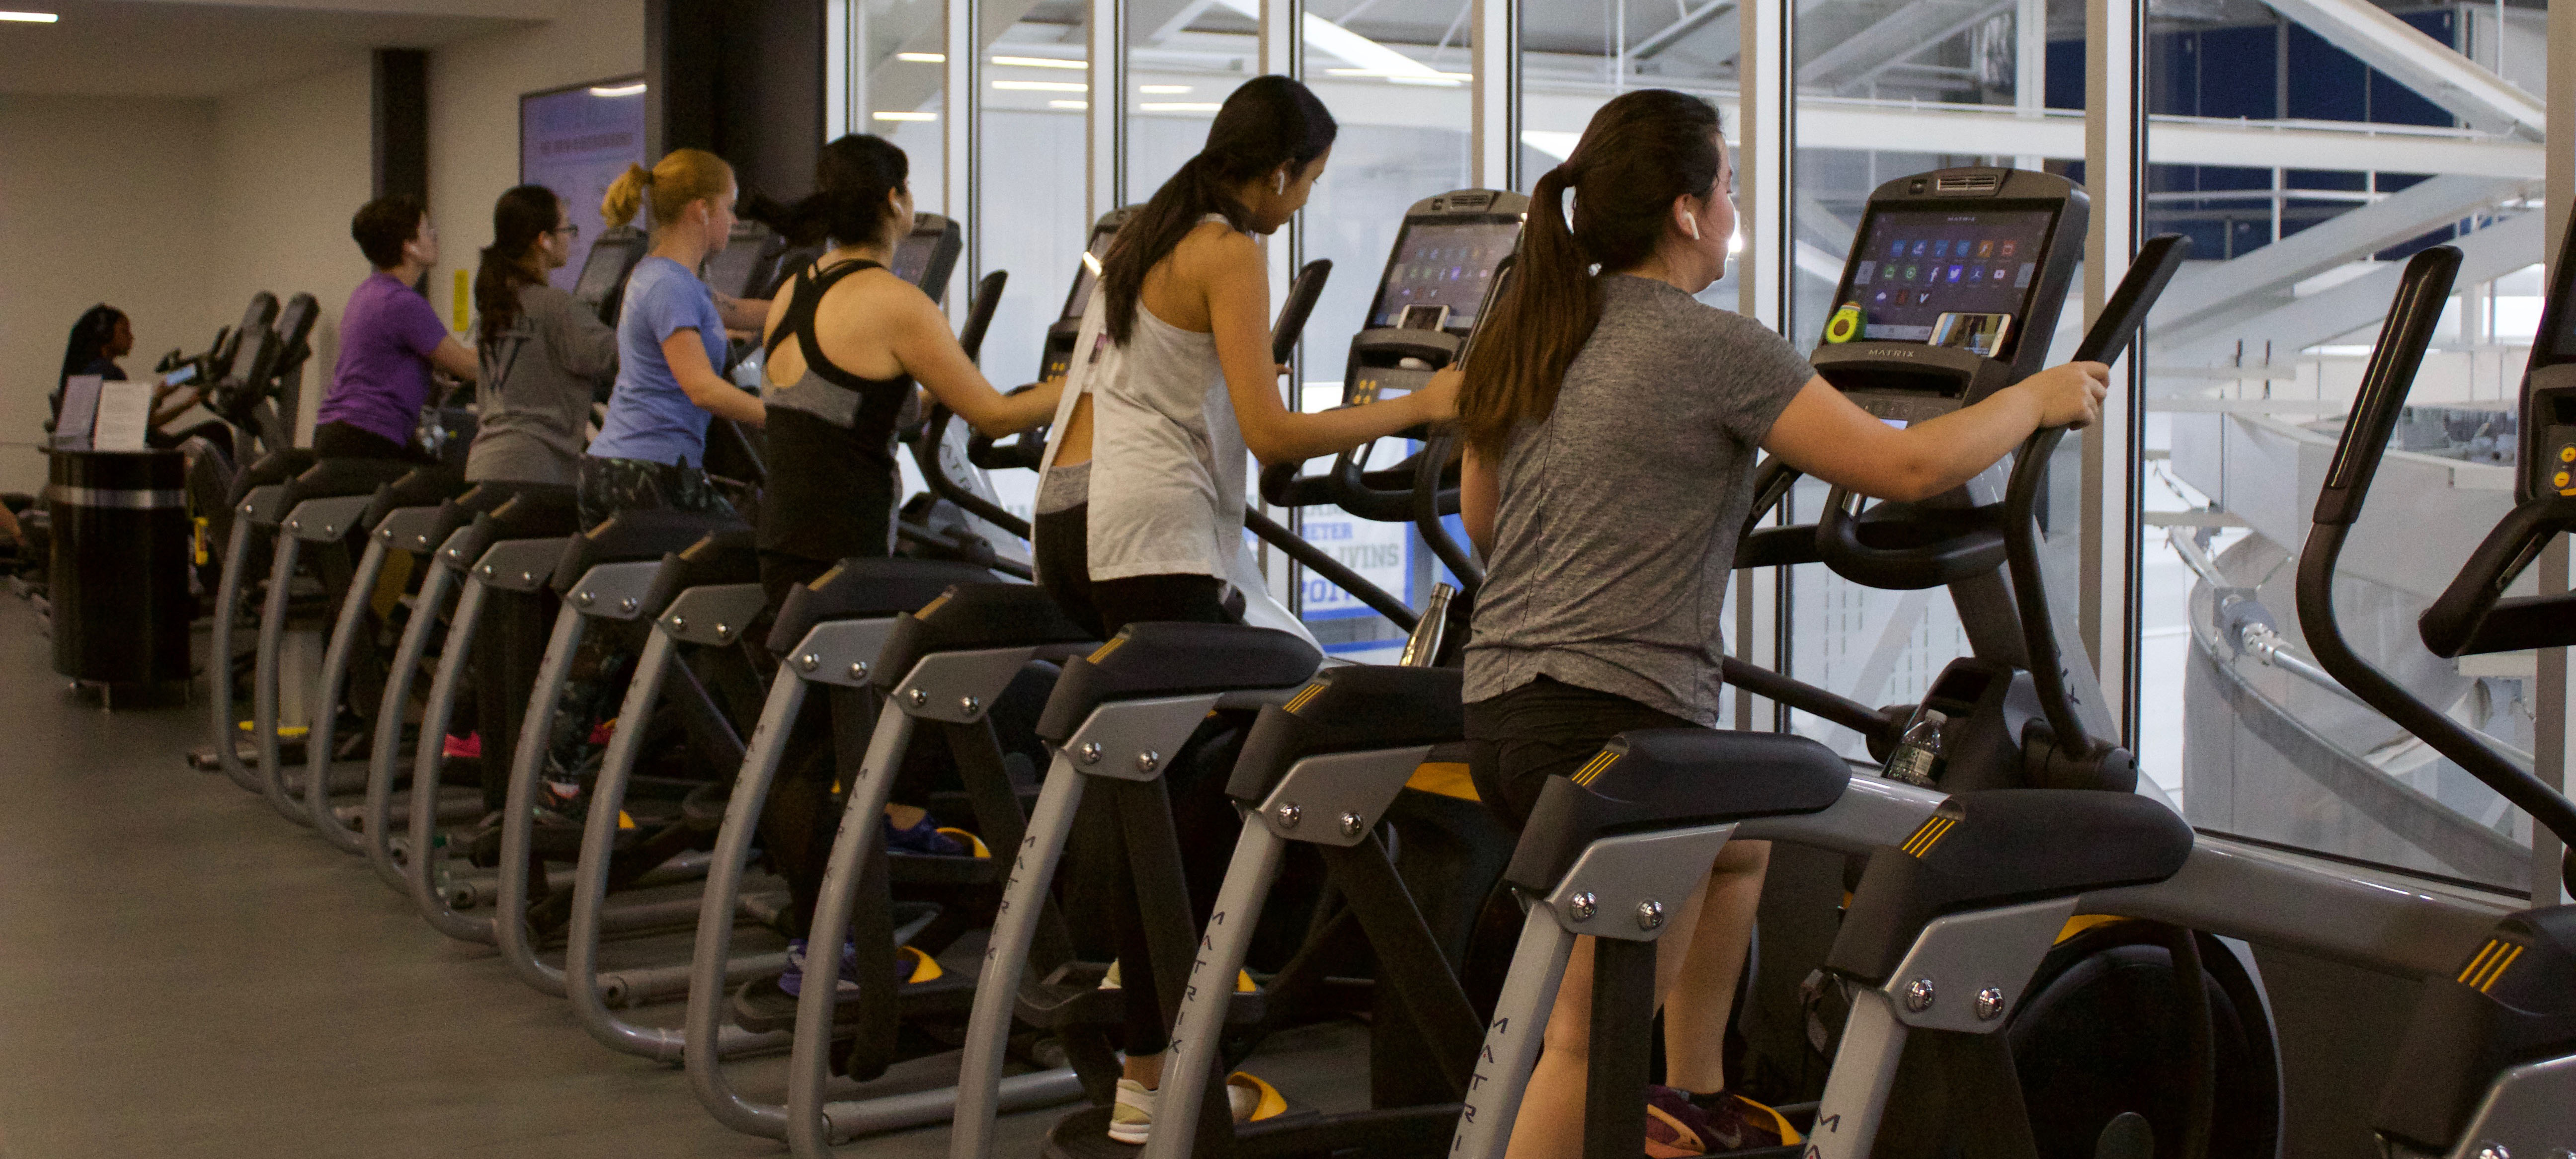 The ellipticals are filled with exercising students facing away from the camera.